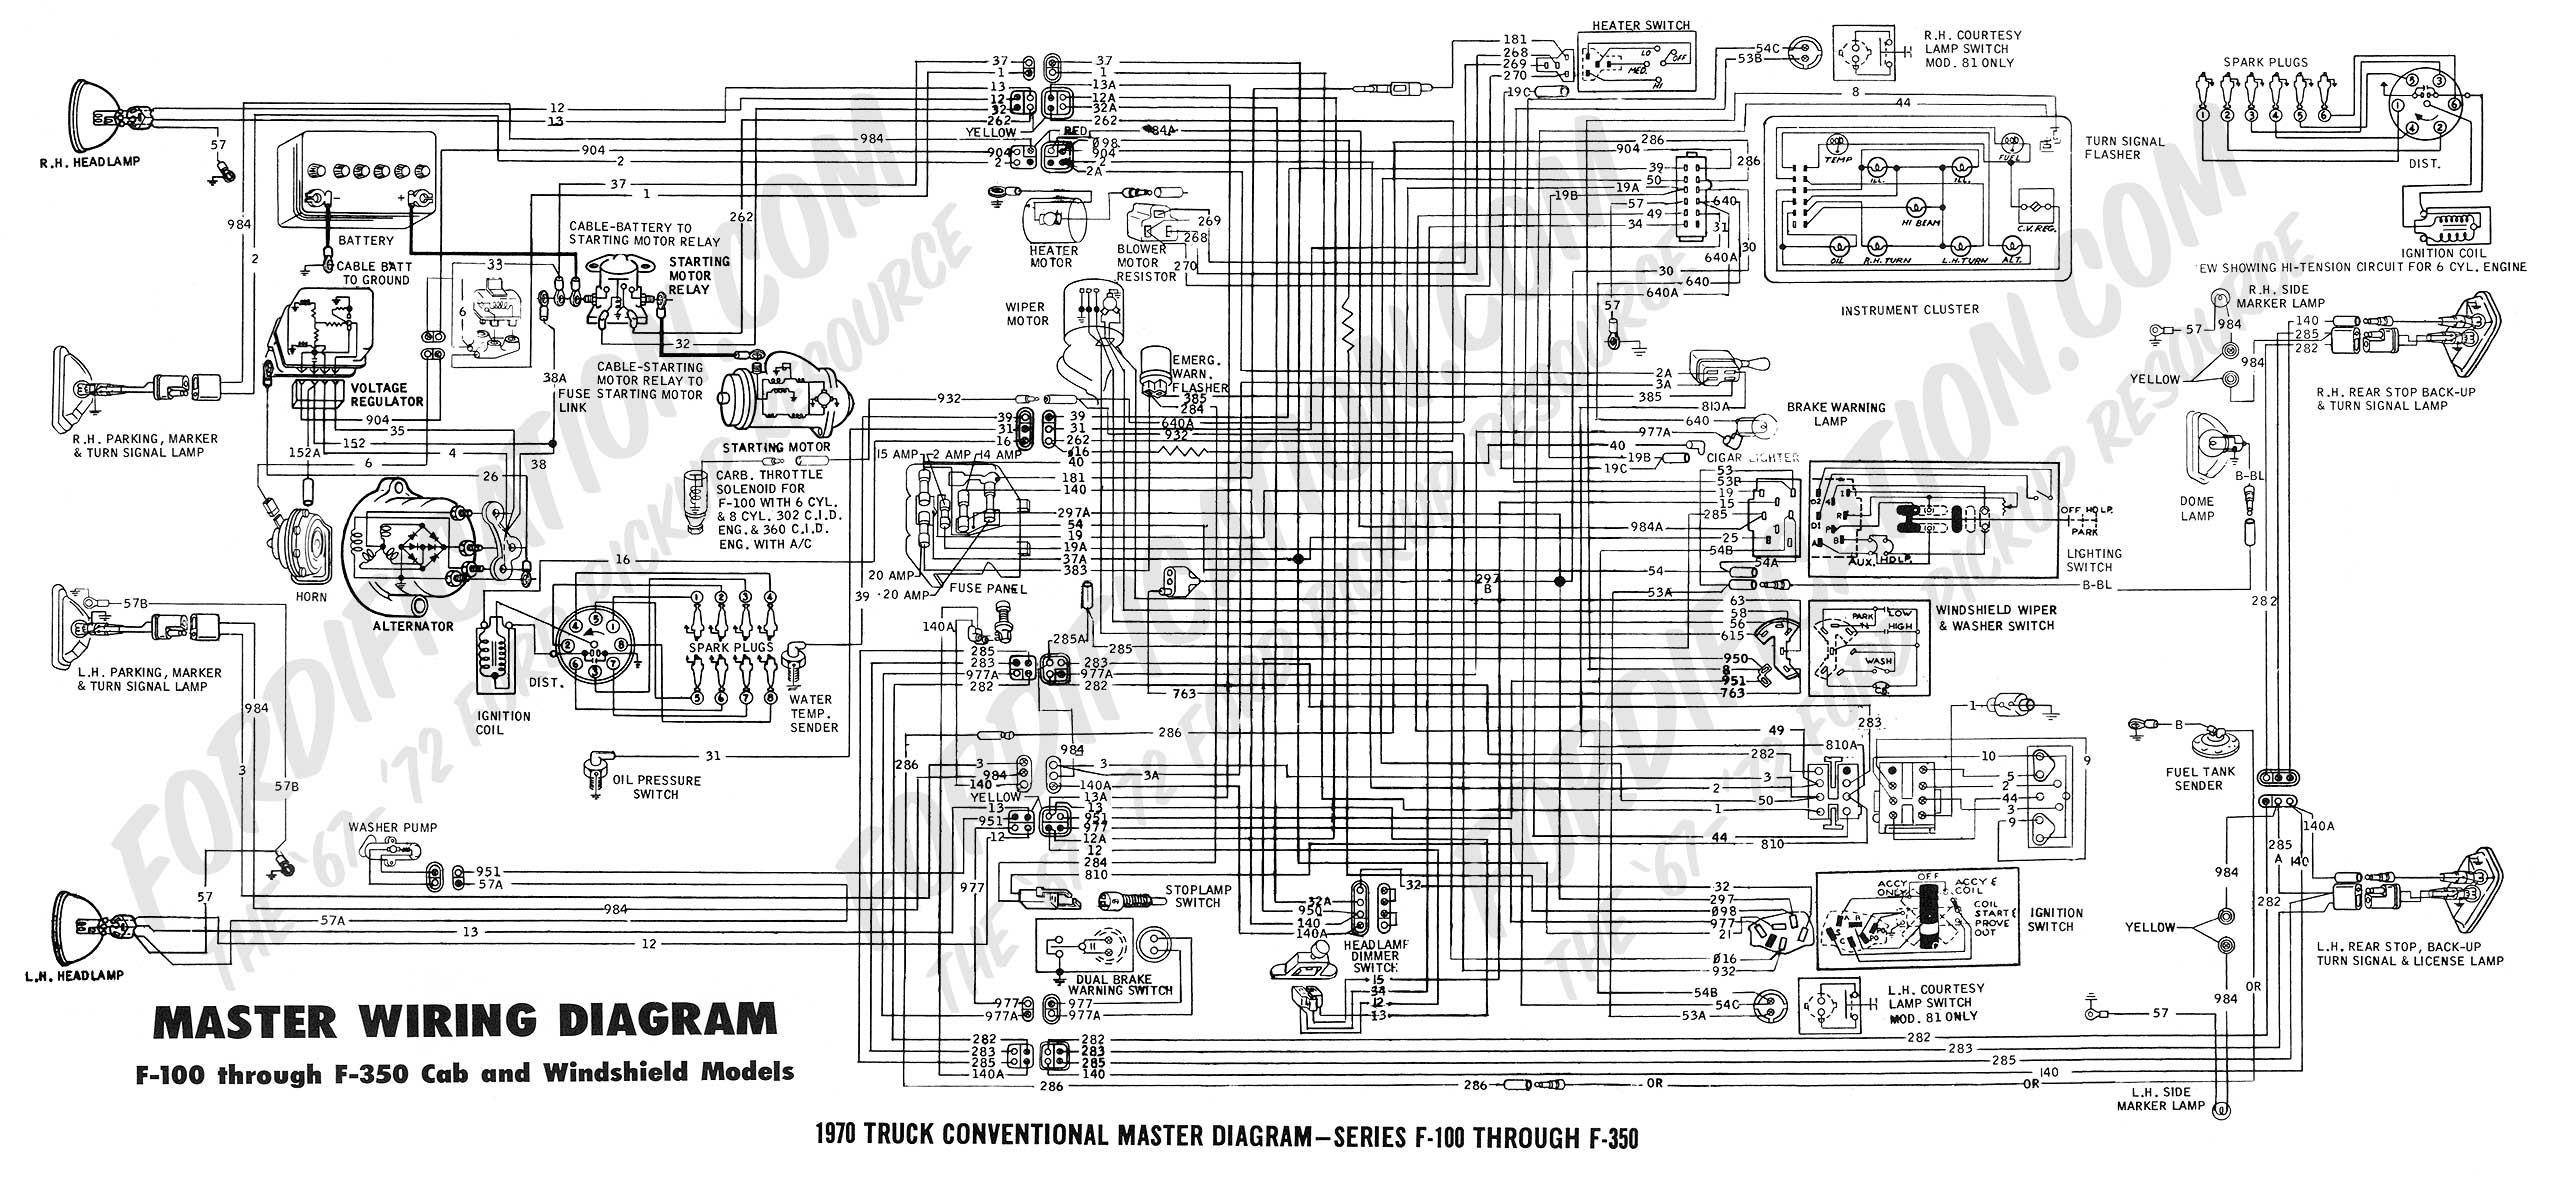 wiring diagram 70_master camper wiring diagram manual slide in camper wiring diagram truck camper wiring diagram at gsmx.co